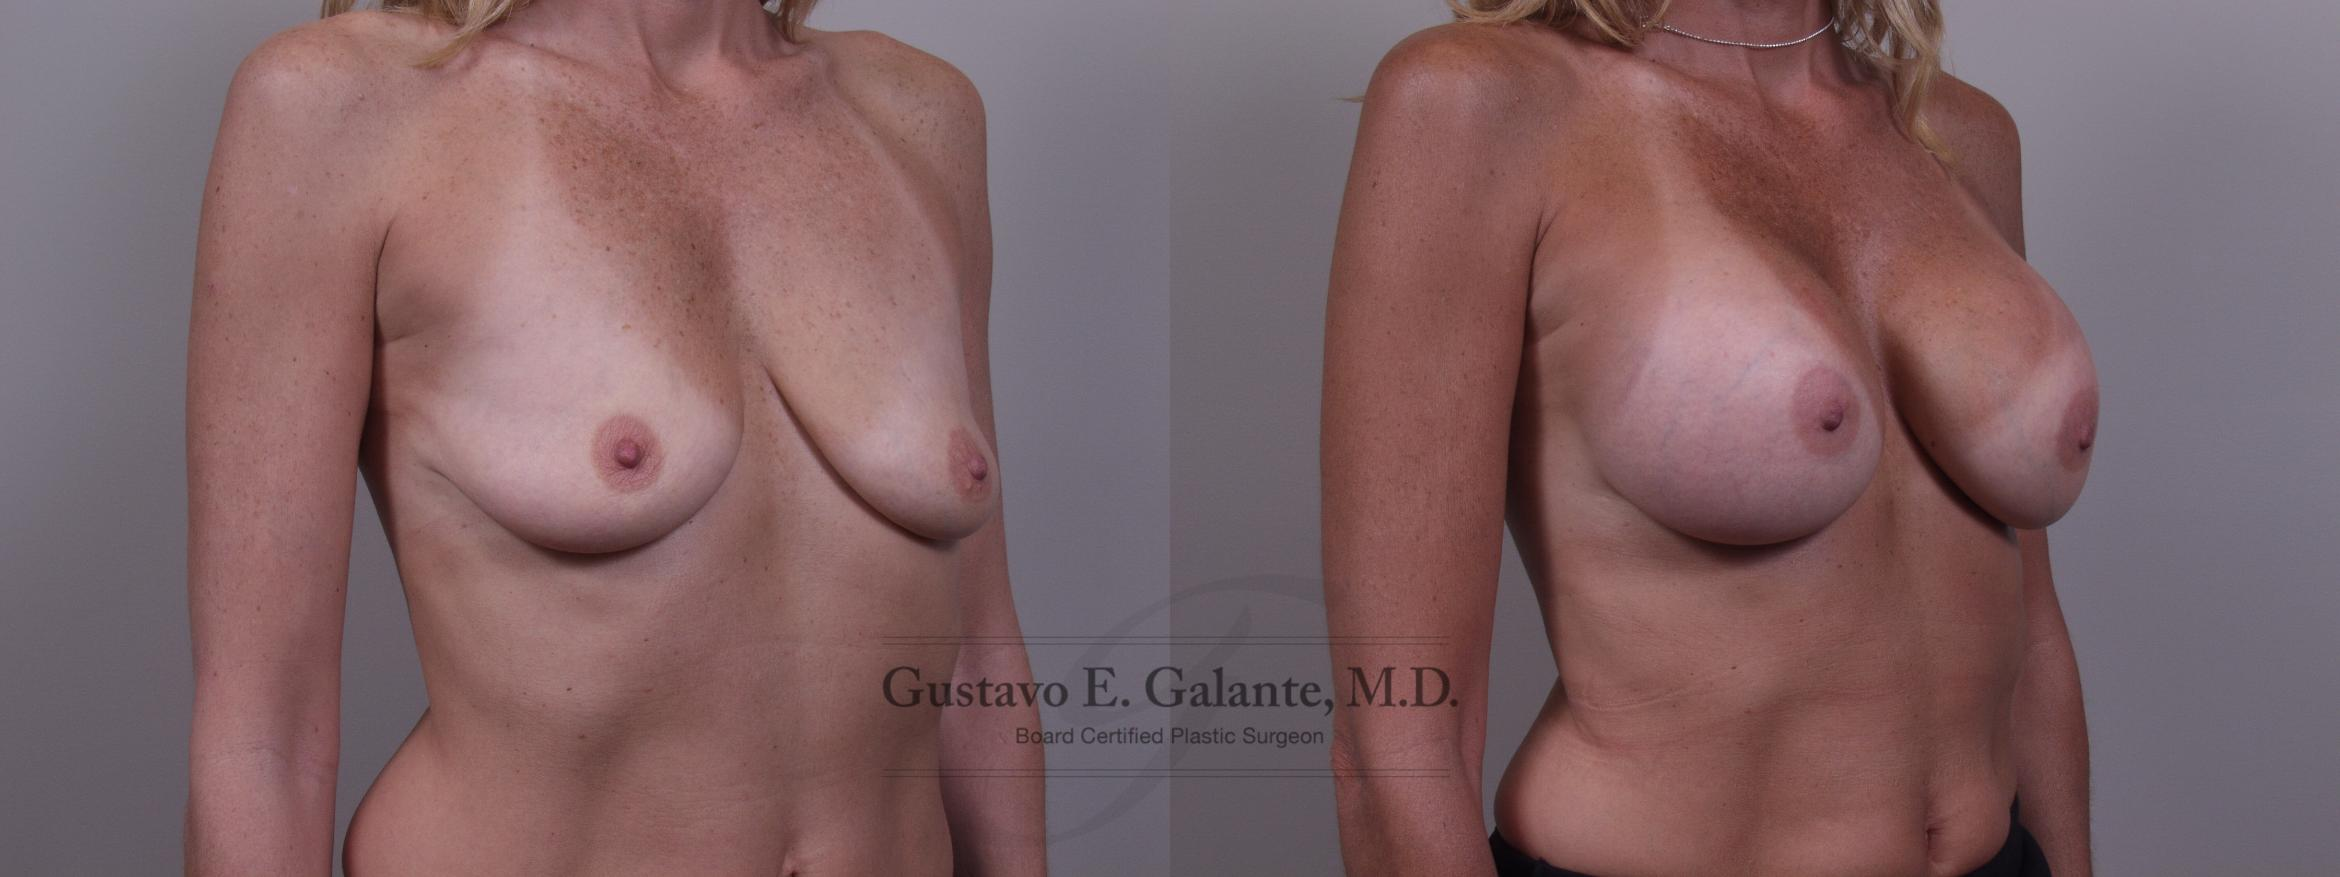 Breast Augmentation Case 83 Before & After View #2 | Valparaiso & Schererville, IN | Gustavo E. Galante, MD